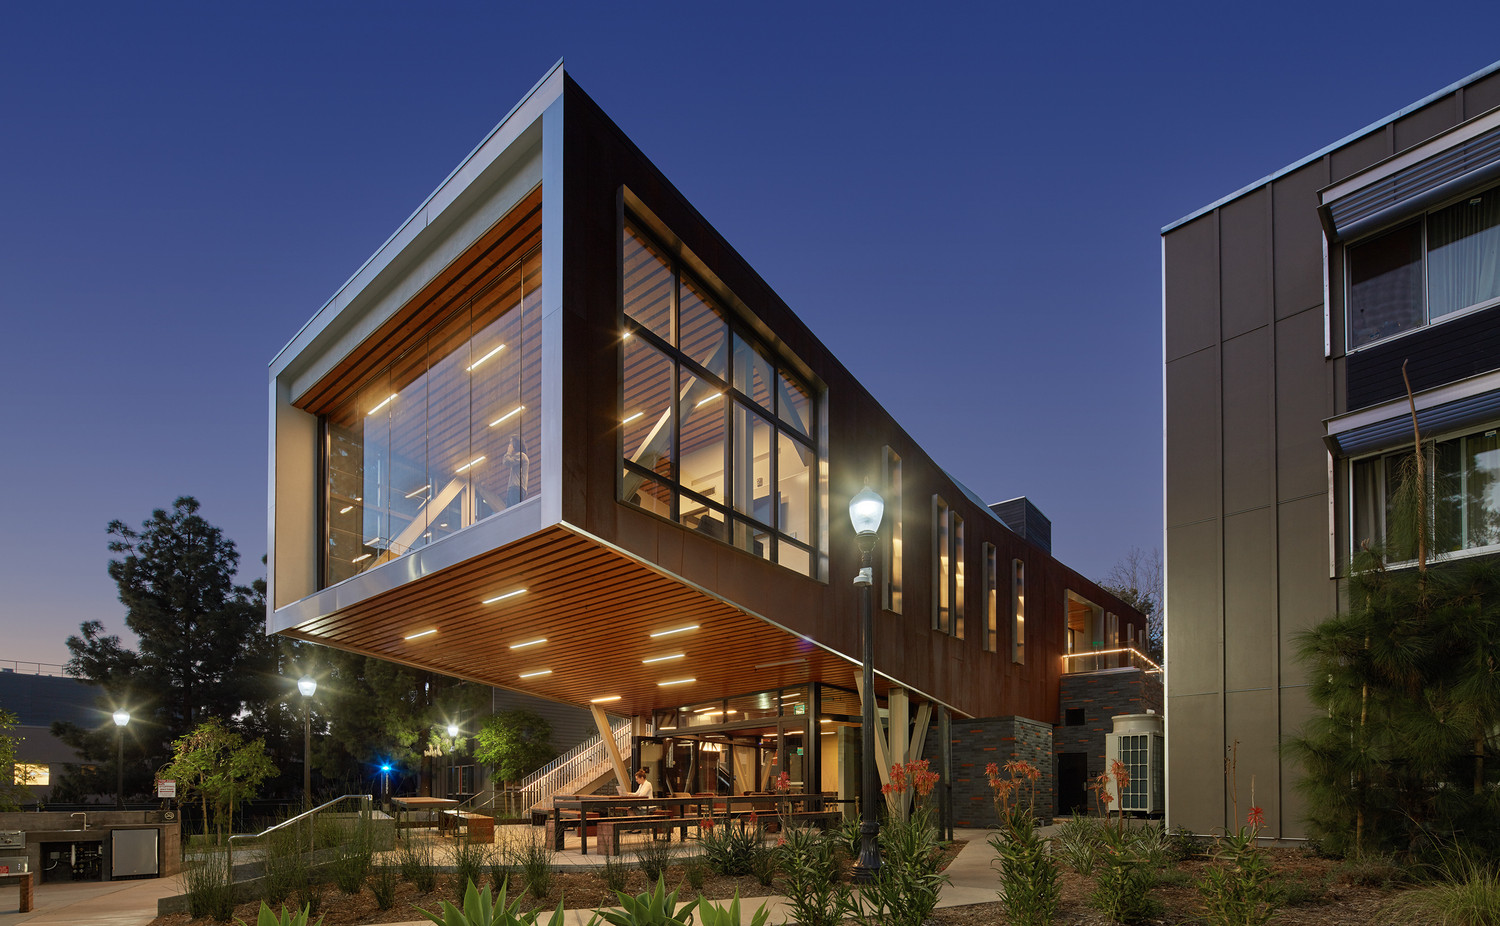 UCLA Saxon Suites | Studio E Architects